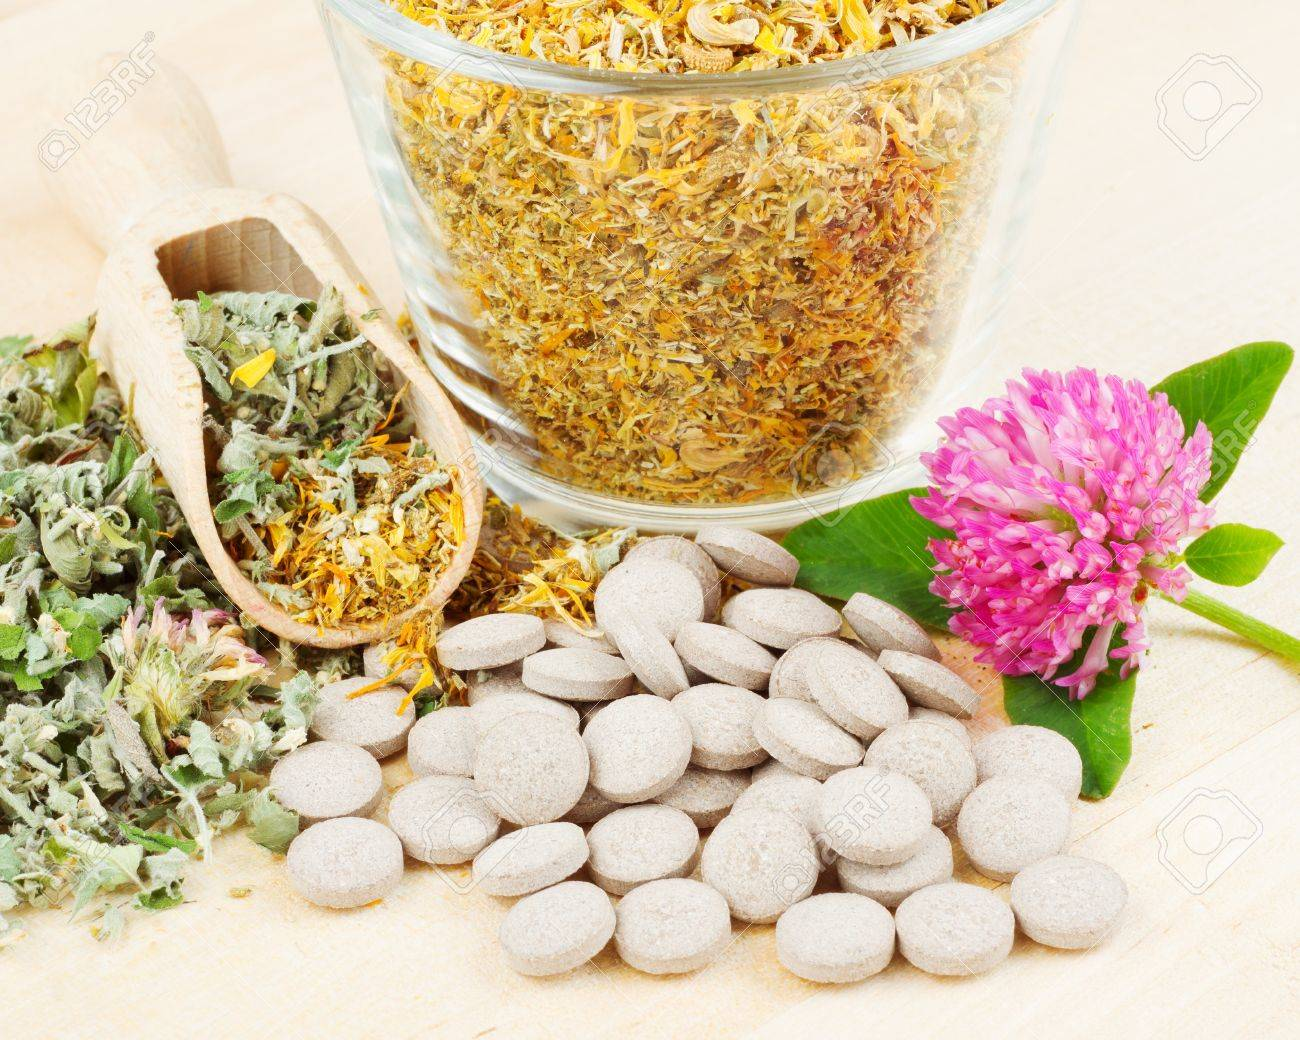 healing herb in glass cup, tablets, herbal medicine Stock Photo - 14118670